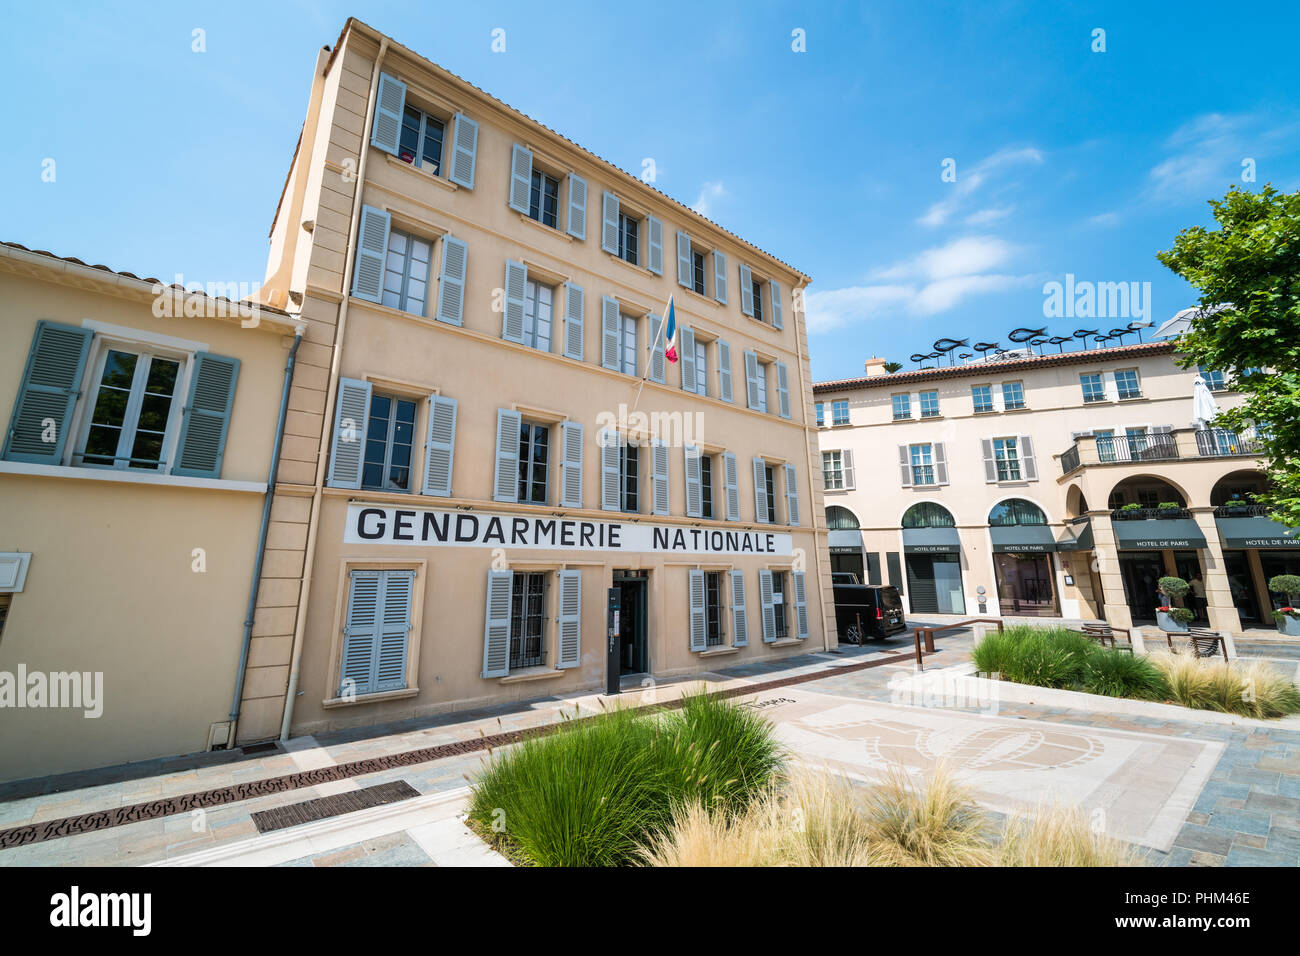 Gendarmerie Nationale Saint Tropez France Europe Stock